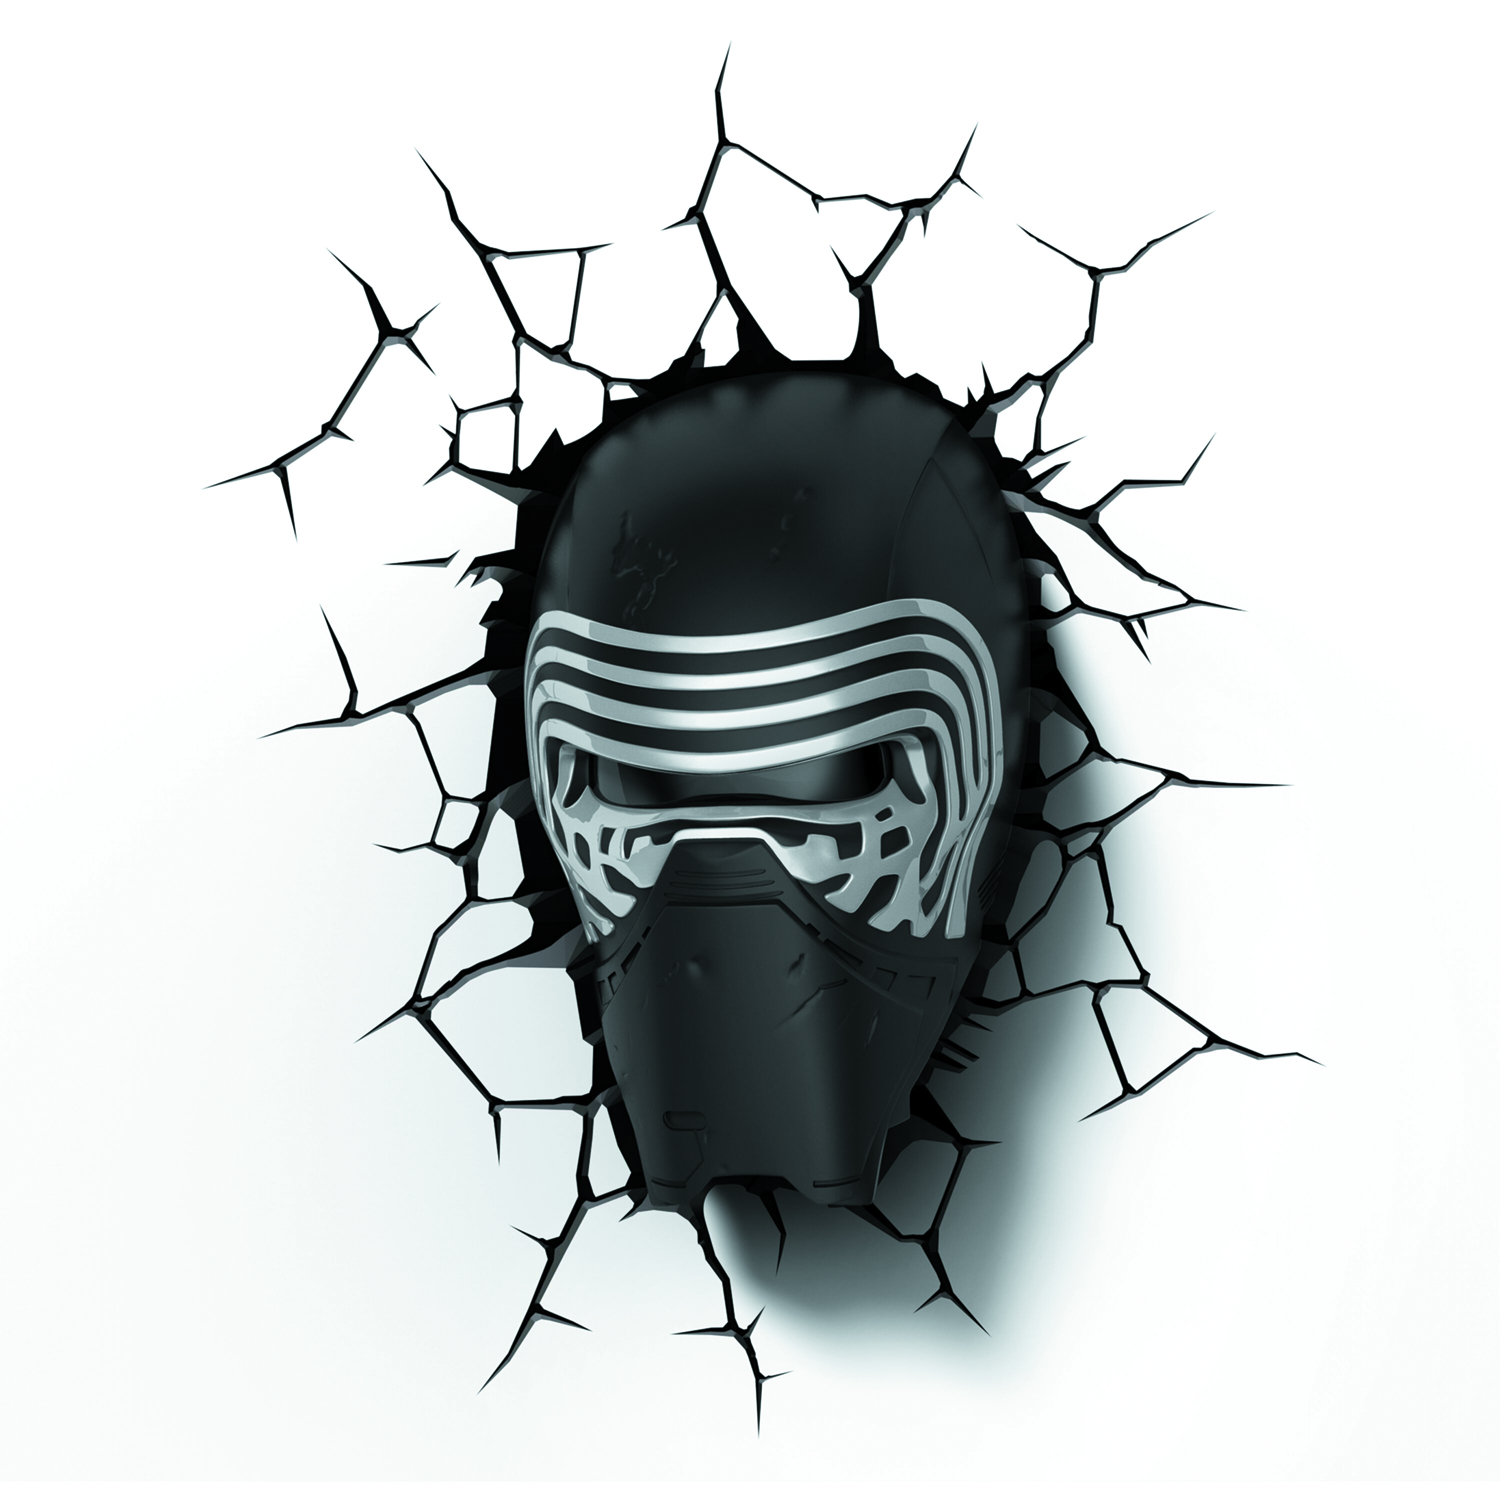 STAR WARS E7 LEAD VILLAIN HELMET 3D LIGHT